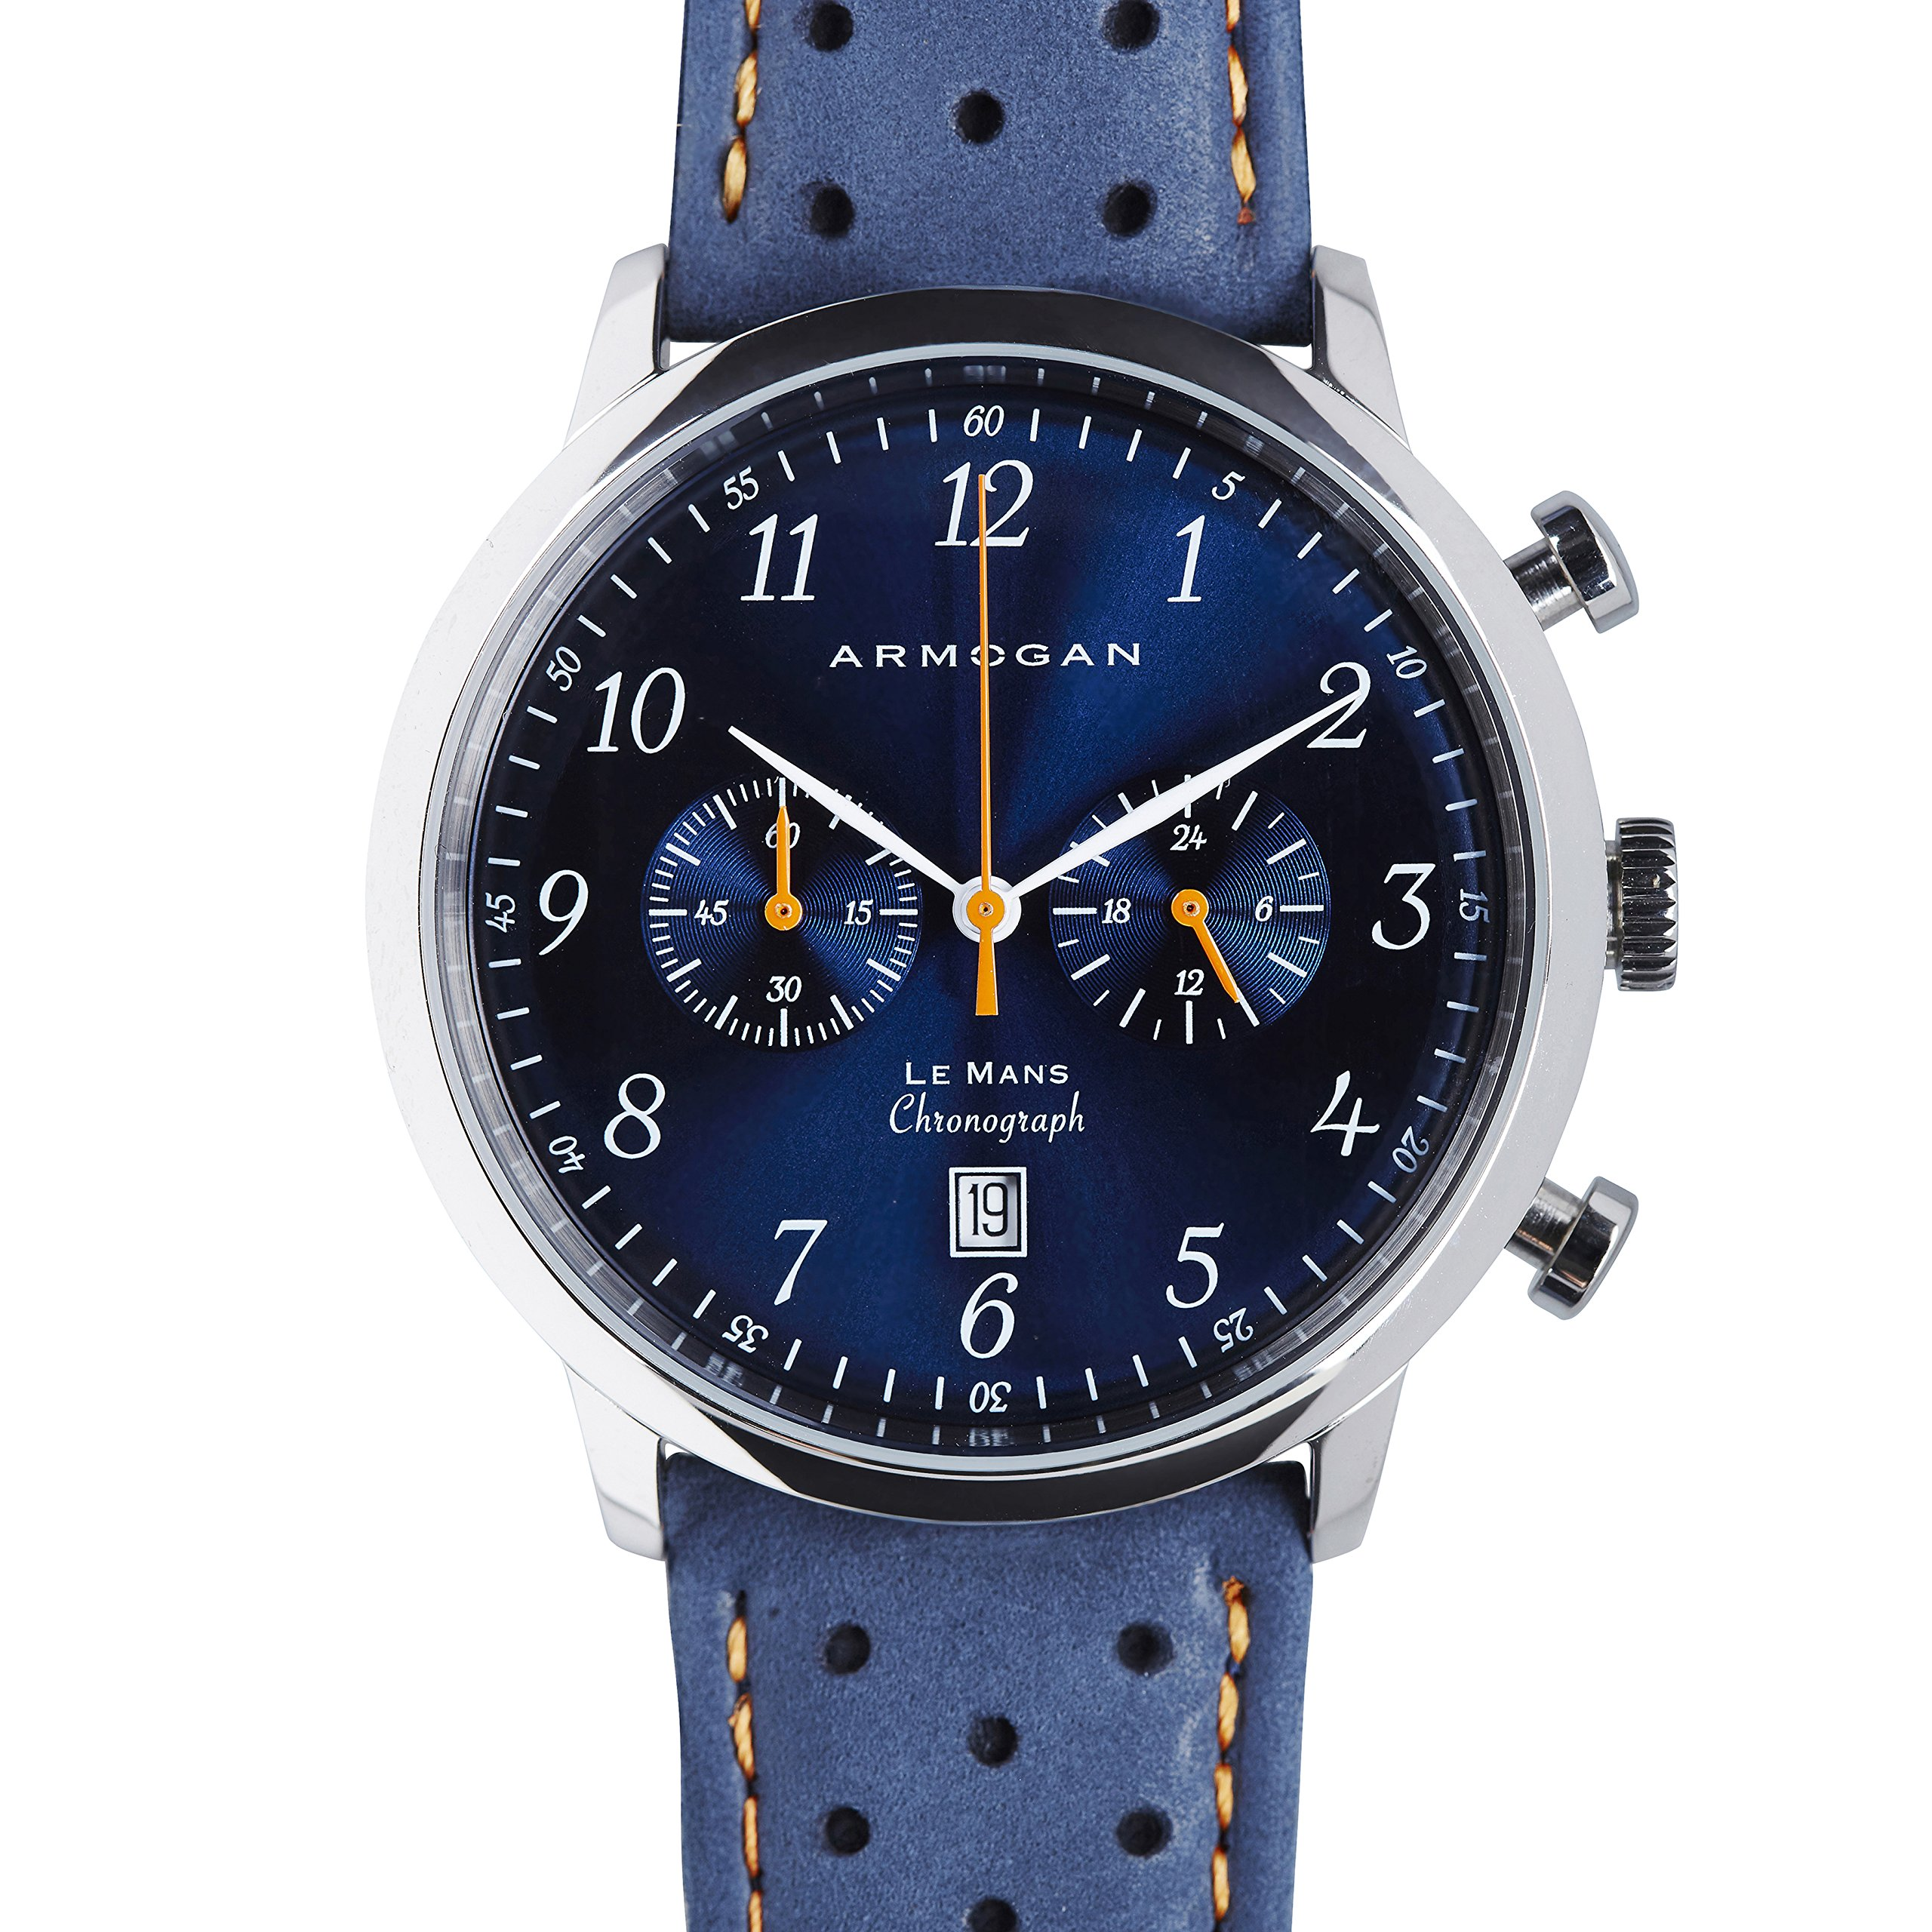 Armogan Le Mans - Blue Sapphire C41 - Men's Chronograph Watch - Perfored Suede Leather Strap